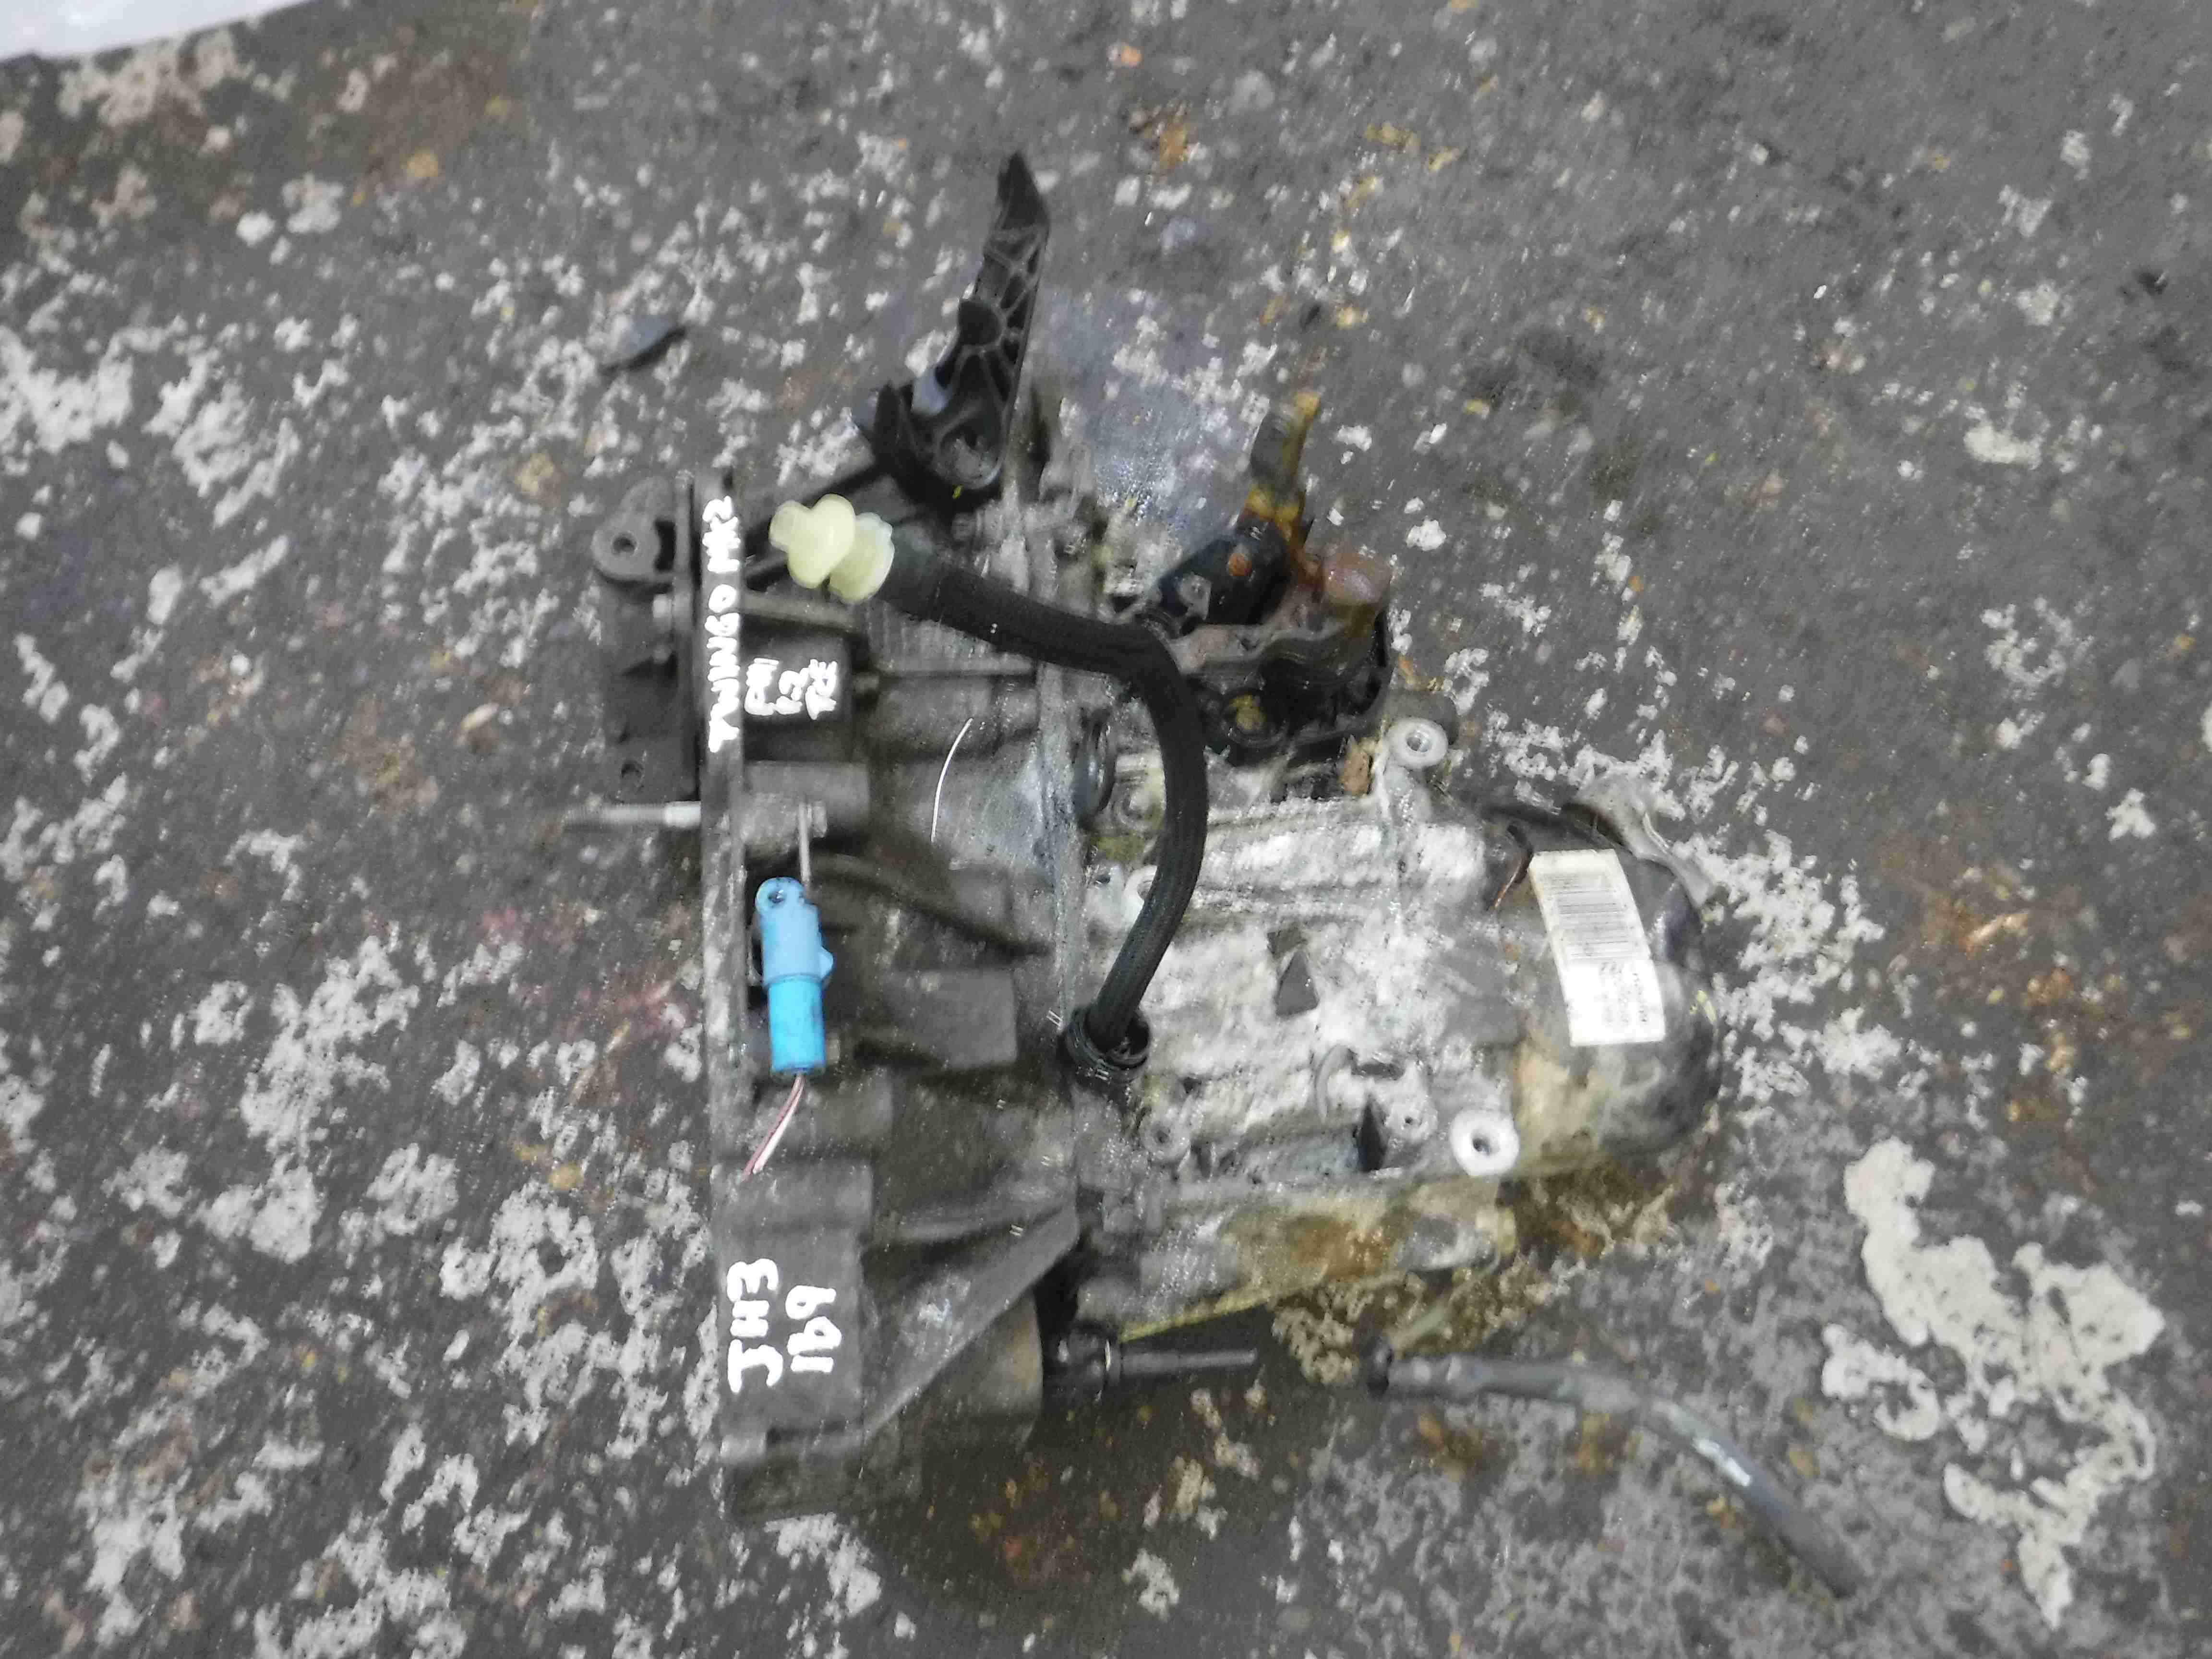 Renault Twingo 2007-2011 1.2 Turbo TCE Gearbox JH3 169 JH3169